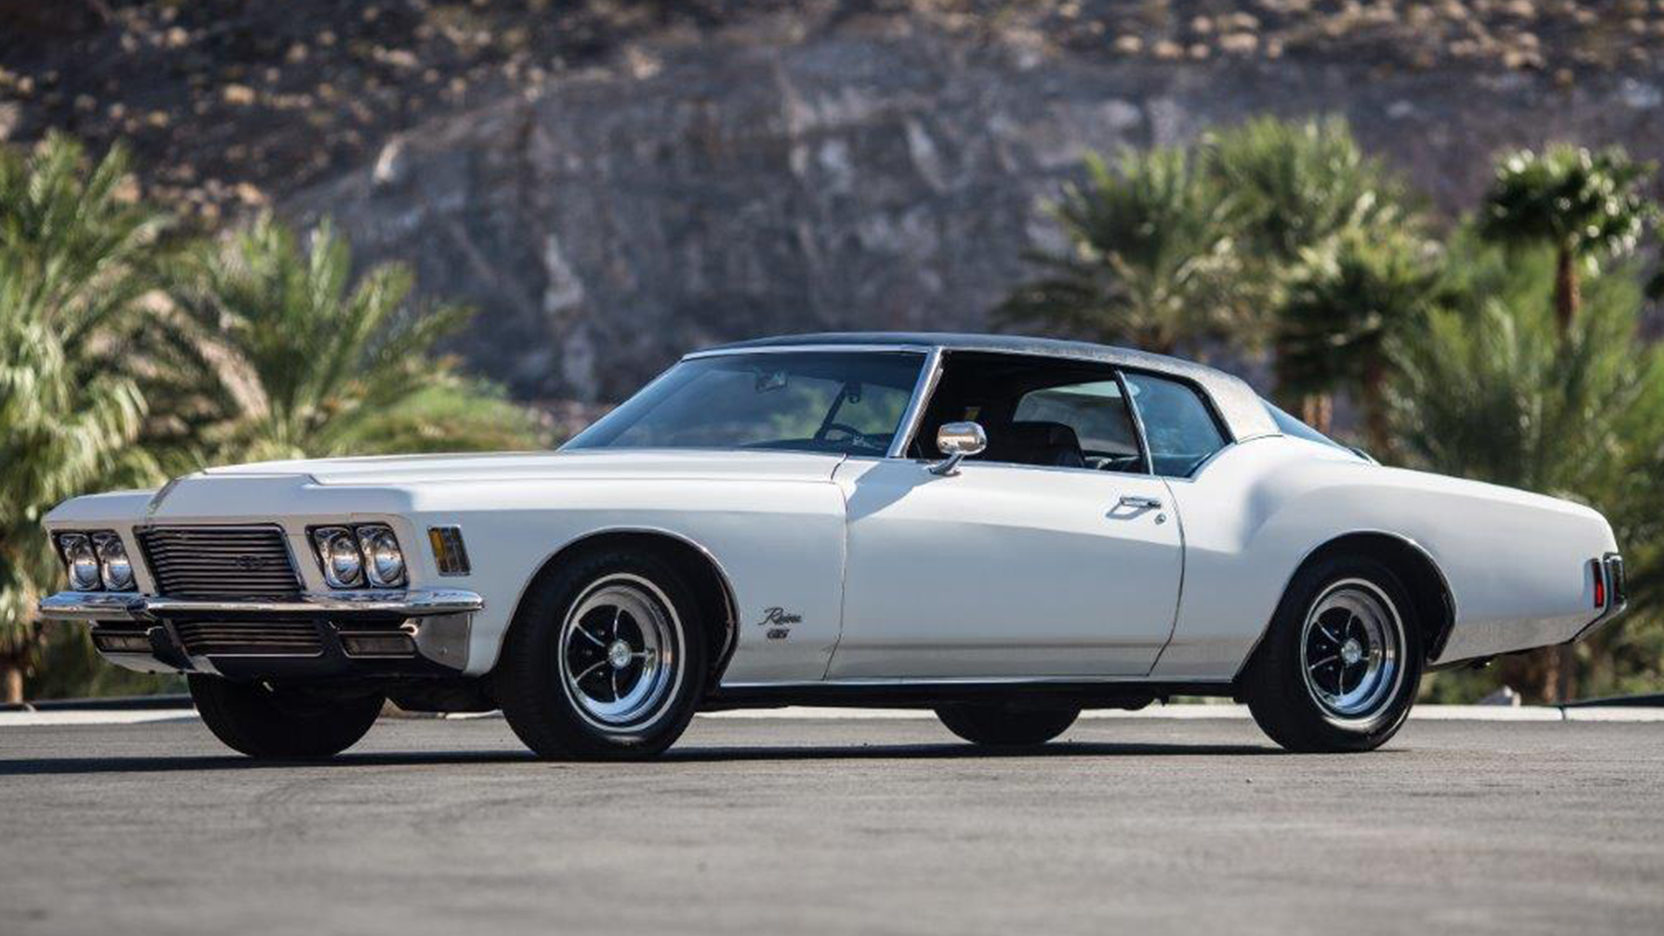 1971 Buick Riviera front 3/4